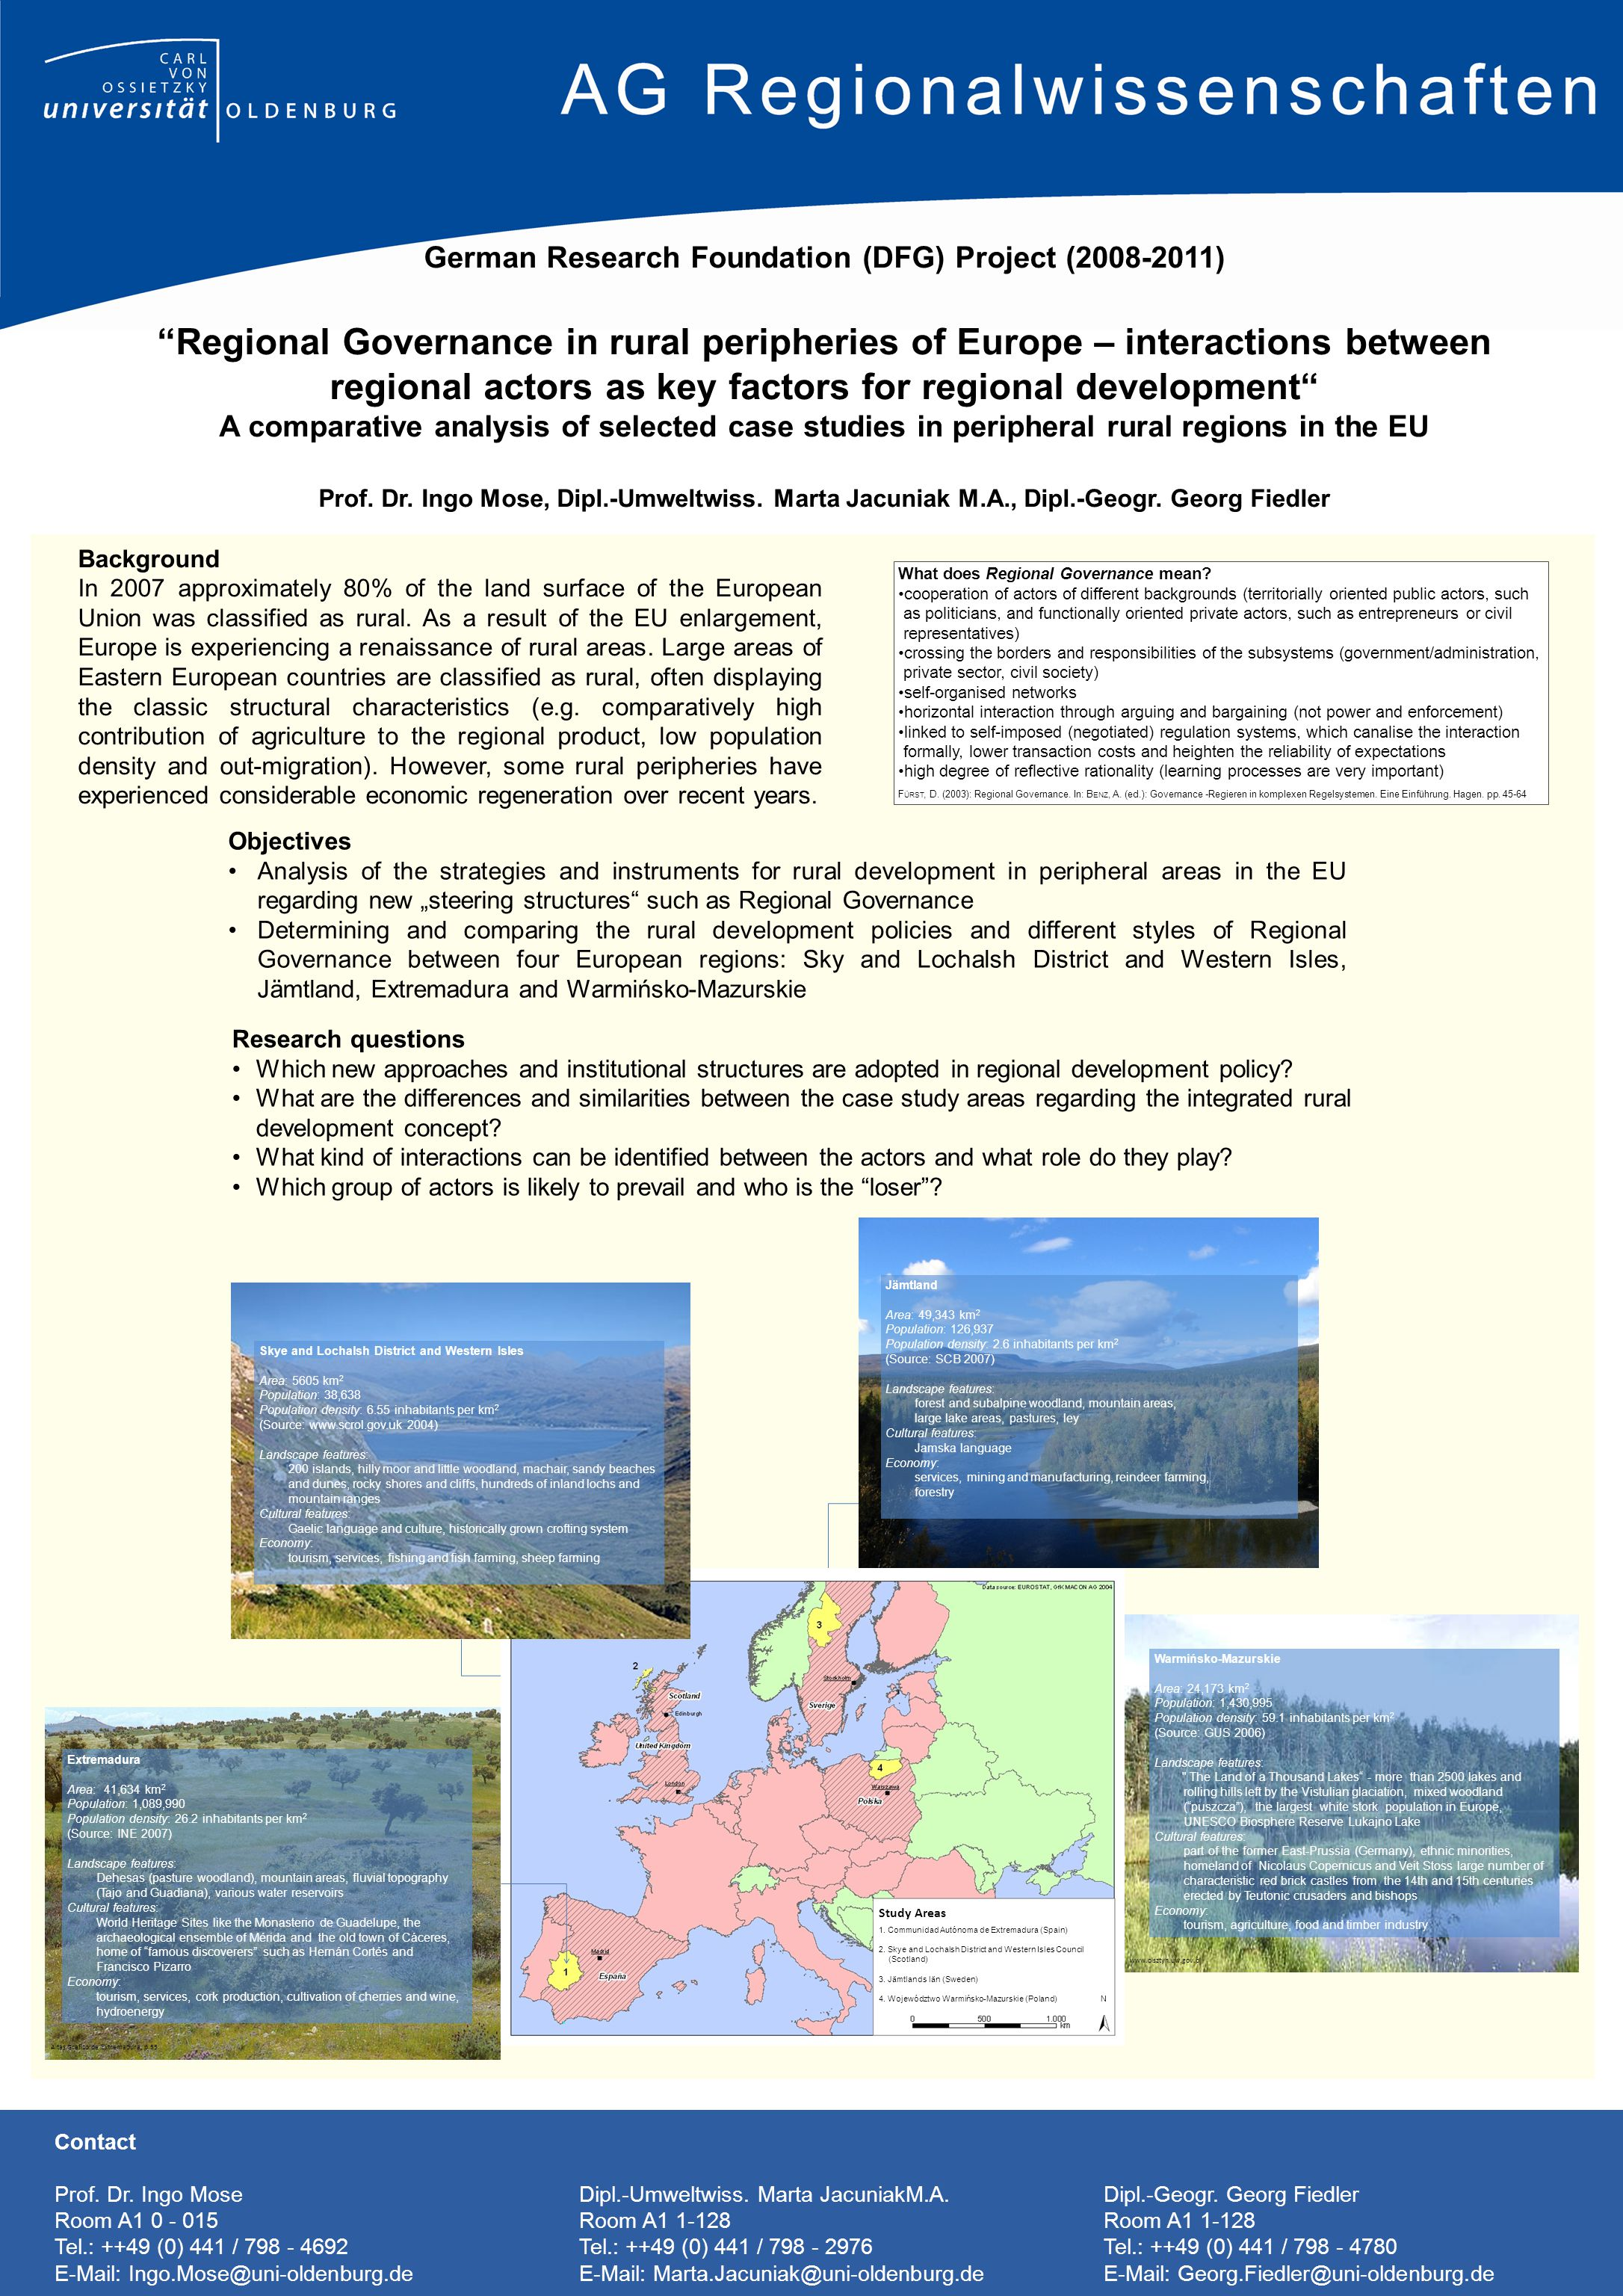 "Objectives Analysis of the strategies and instruments for rural development in peripheral areas in the EU regarding new ""steering structures such as Regional Governance Determining and comparing the rural development policies and different styles of Regional Governance between four European regions: Sky and Lochalsh District and Western Isles, Jämtland, Extremadura and Warmińsko-Mazurskie Background In 2007 approximately 80% of the land surface of the European Union was classified as rural."